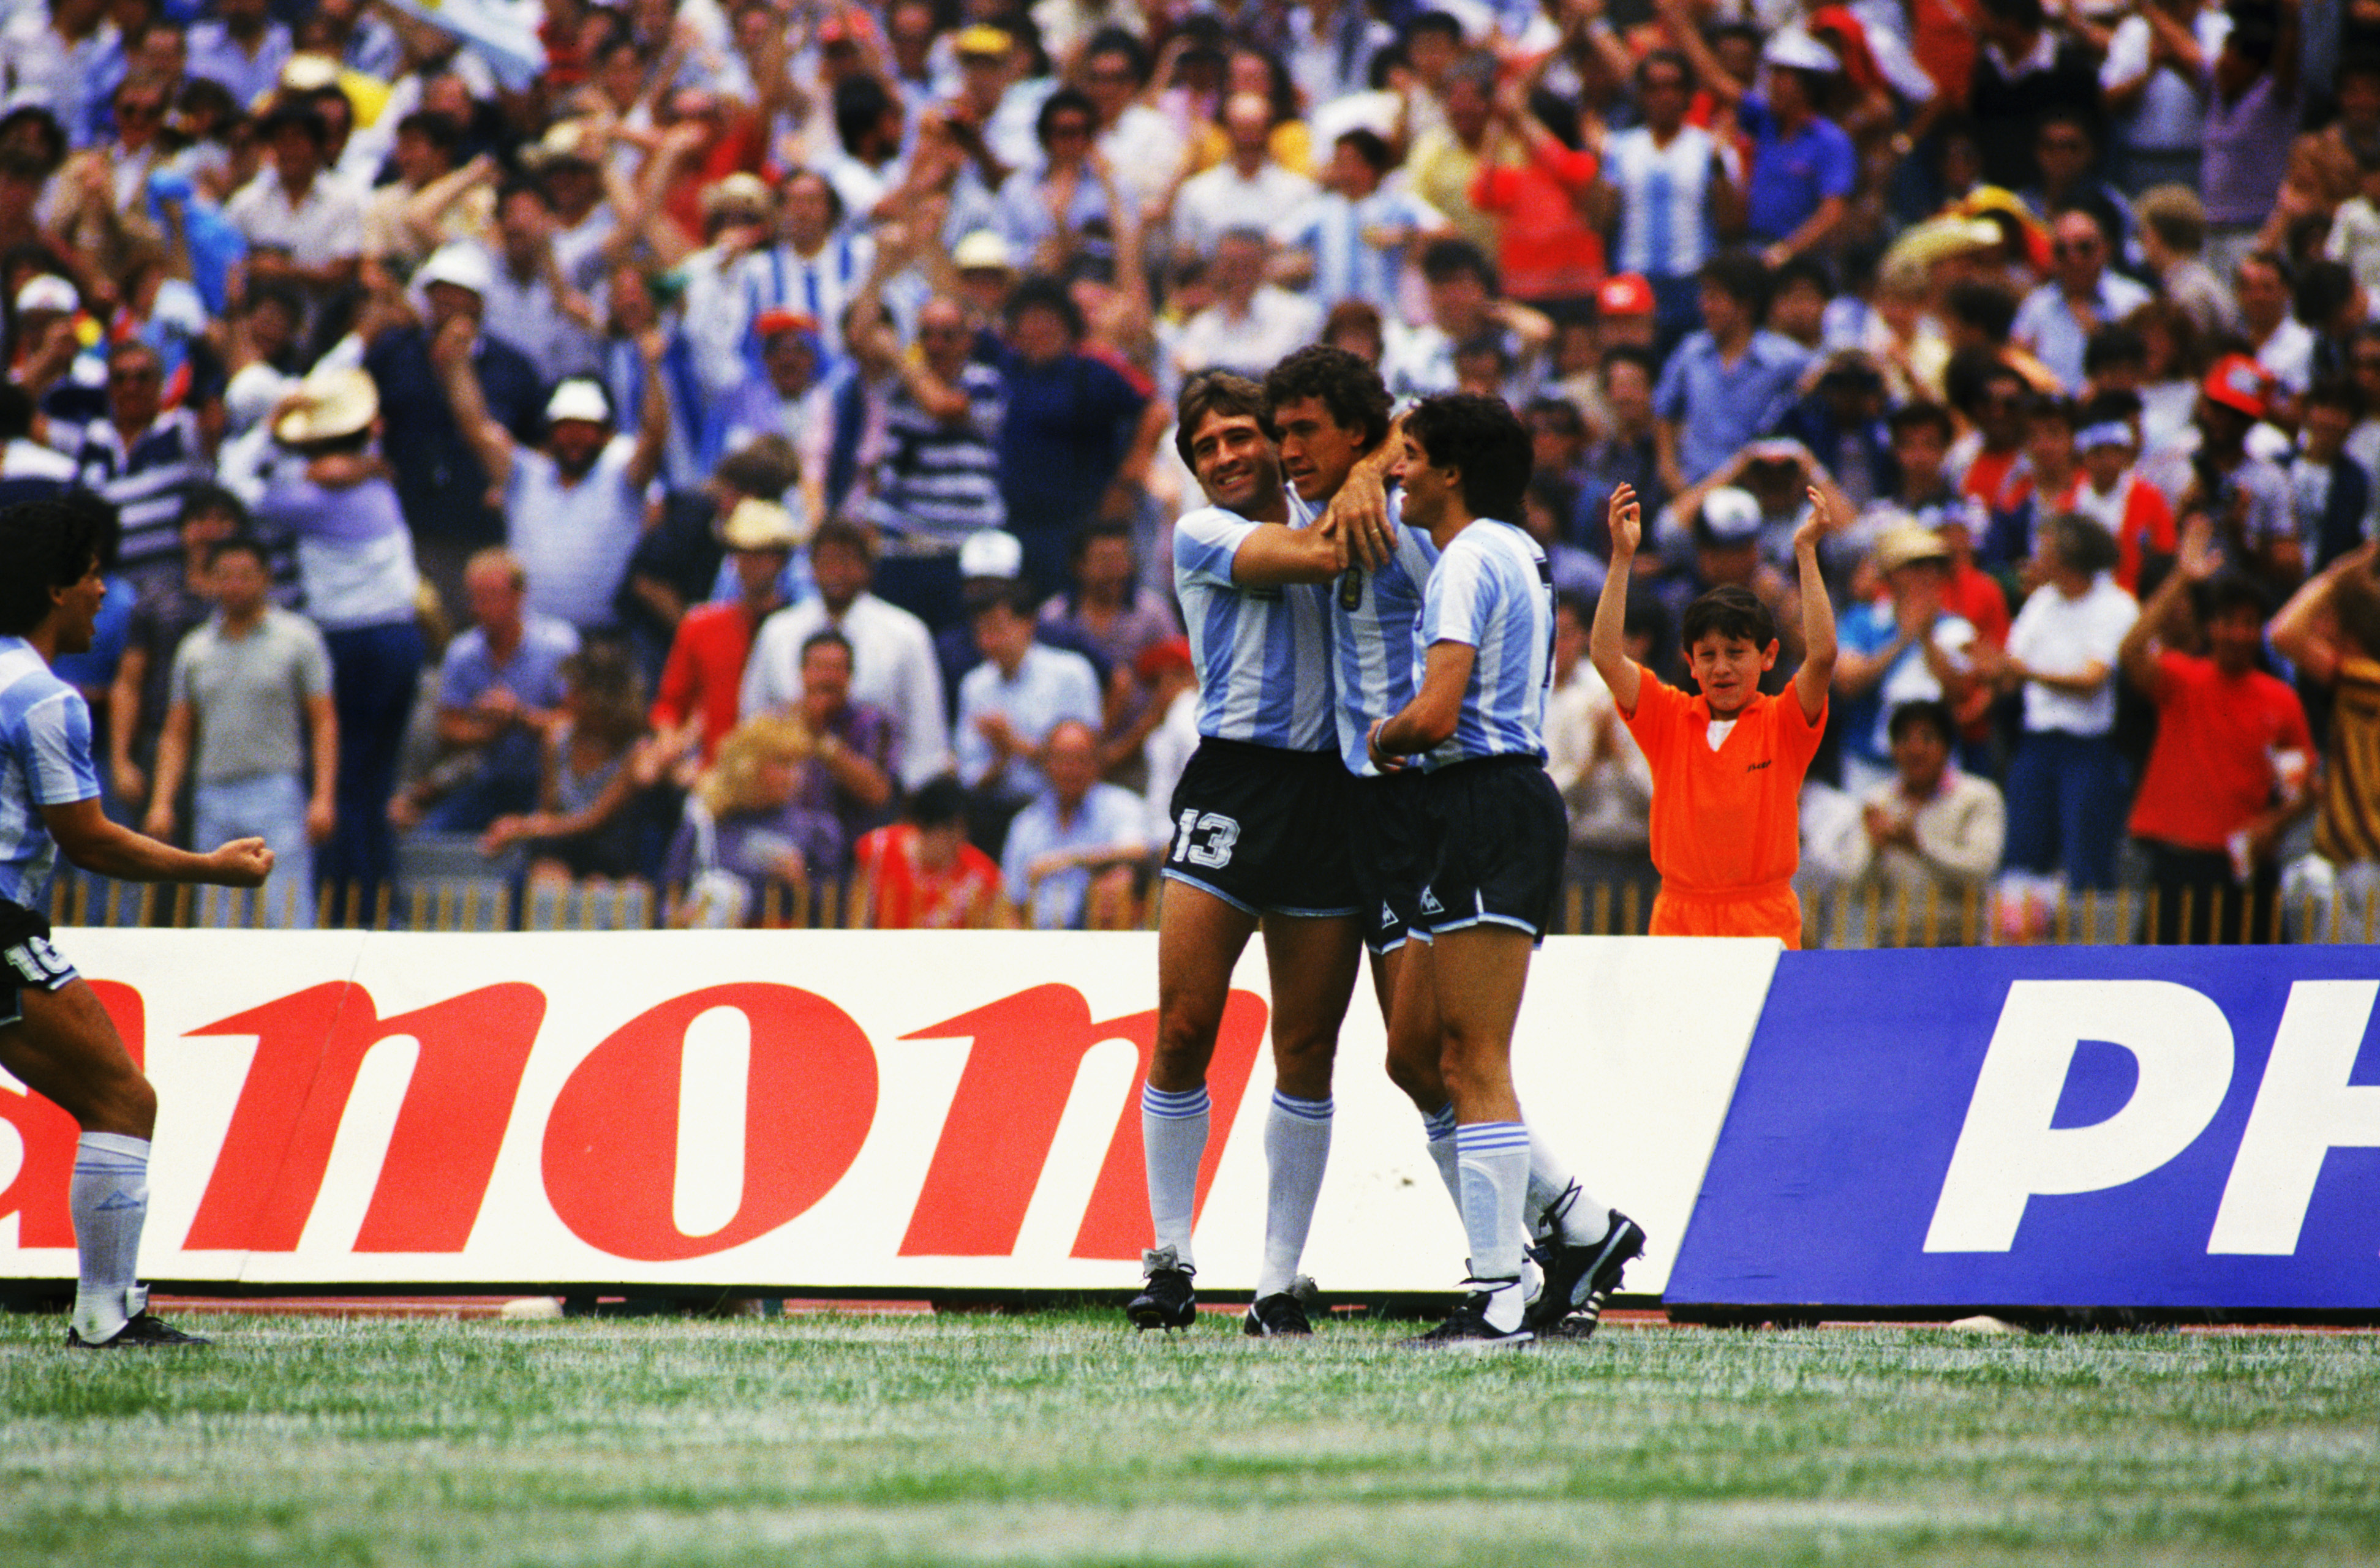 MEXICO CITY - JUNE 10:  Argentina players Oscar Garre (left) and Jose Burruchaga (right) congratulate goalscorer Jorge Valdano (centre) after he scored the opening goal of the match during the FIFA World Cup Finals 1986 Group A match between Argentina and